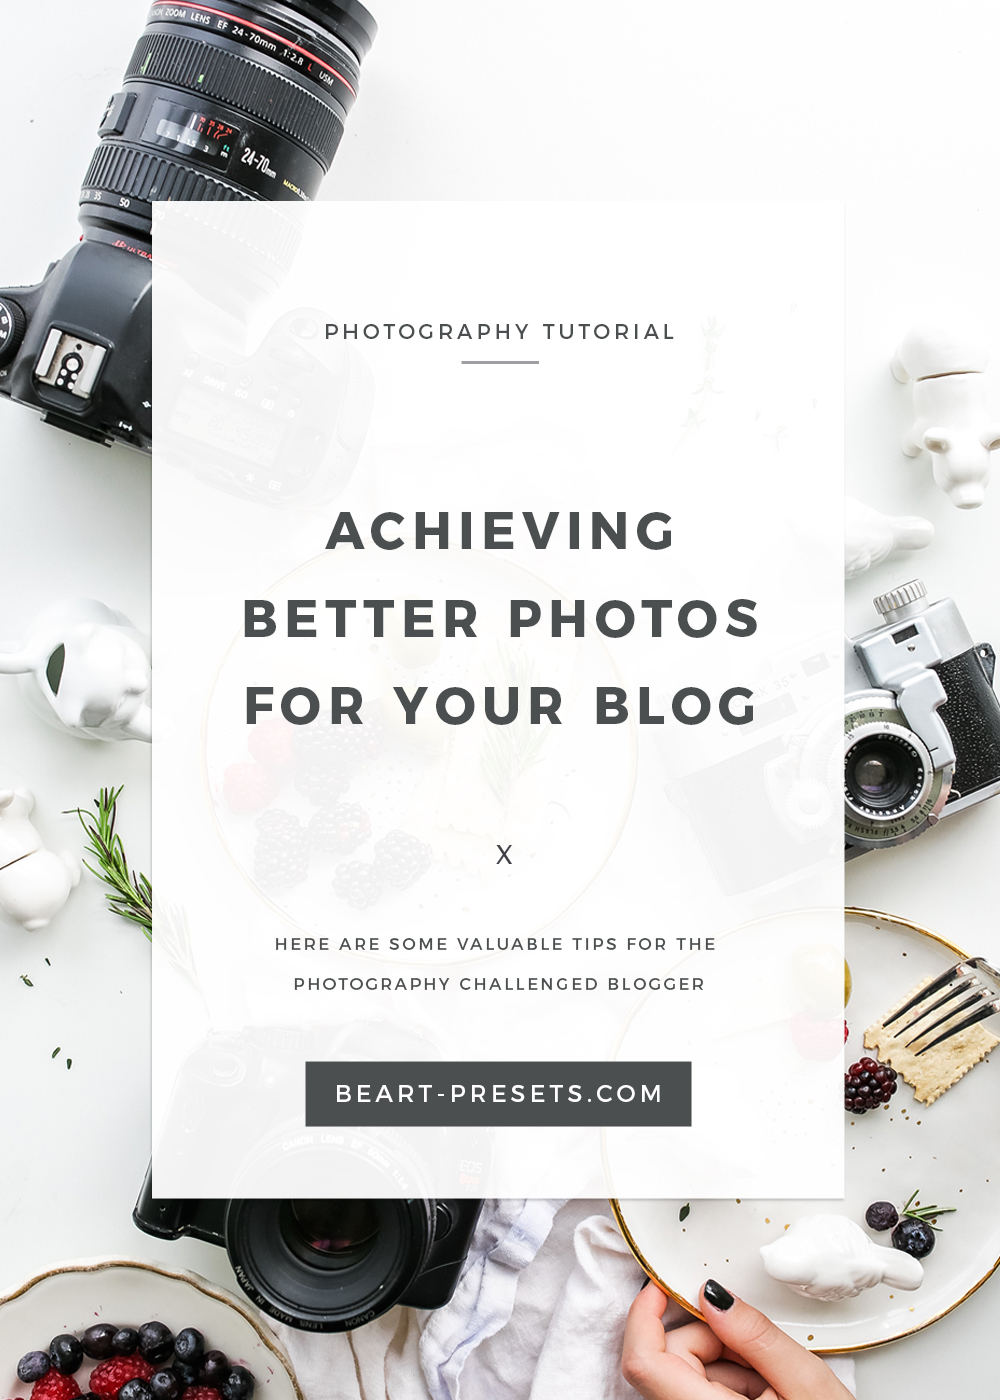 ACHIEVING BETTER PHOTOS FOR YOUR BLOG